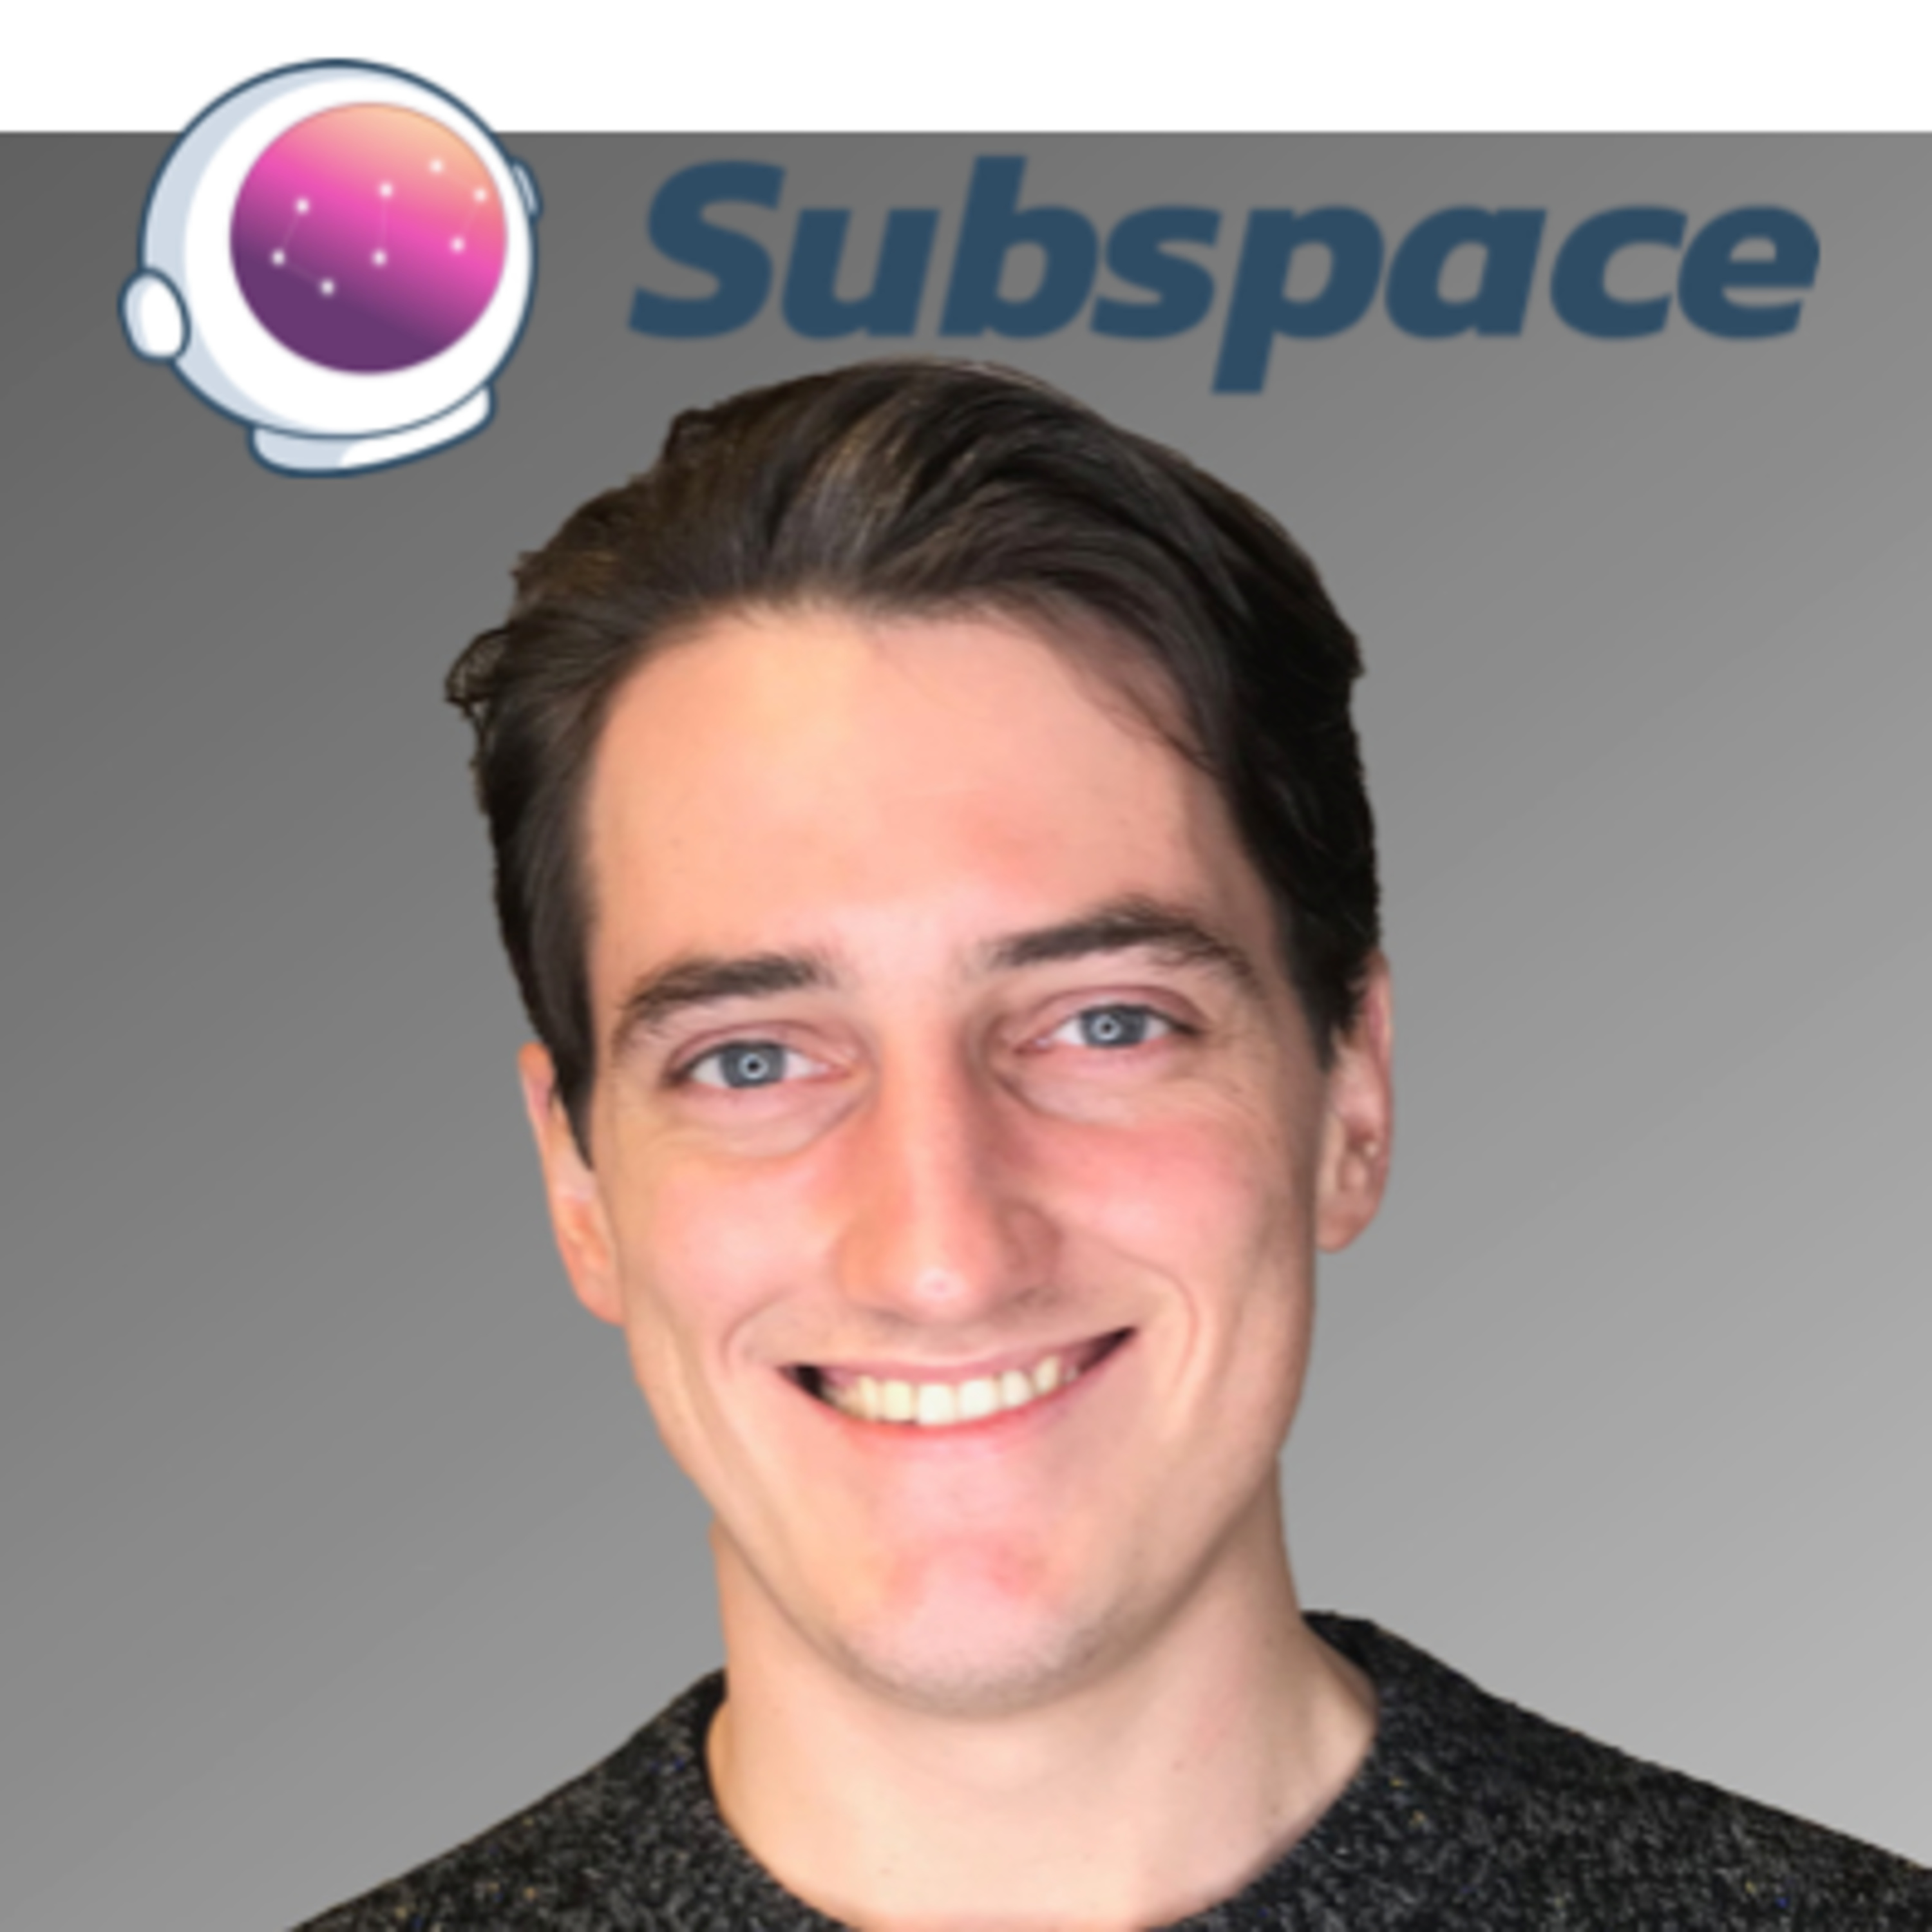 Chris Gillespie, Subspace: Swarm Building Software